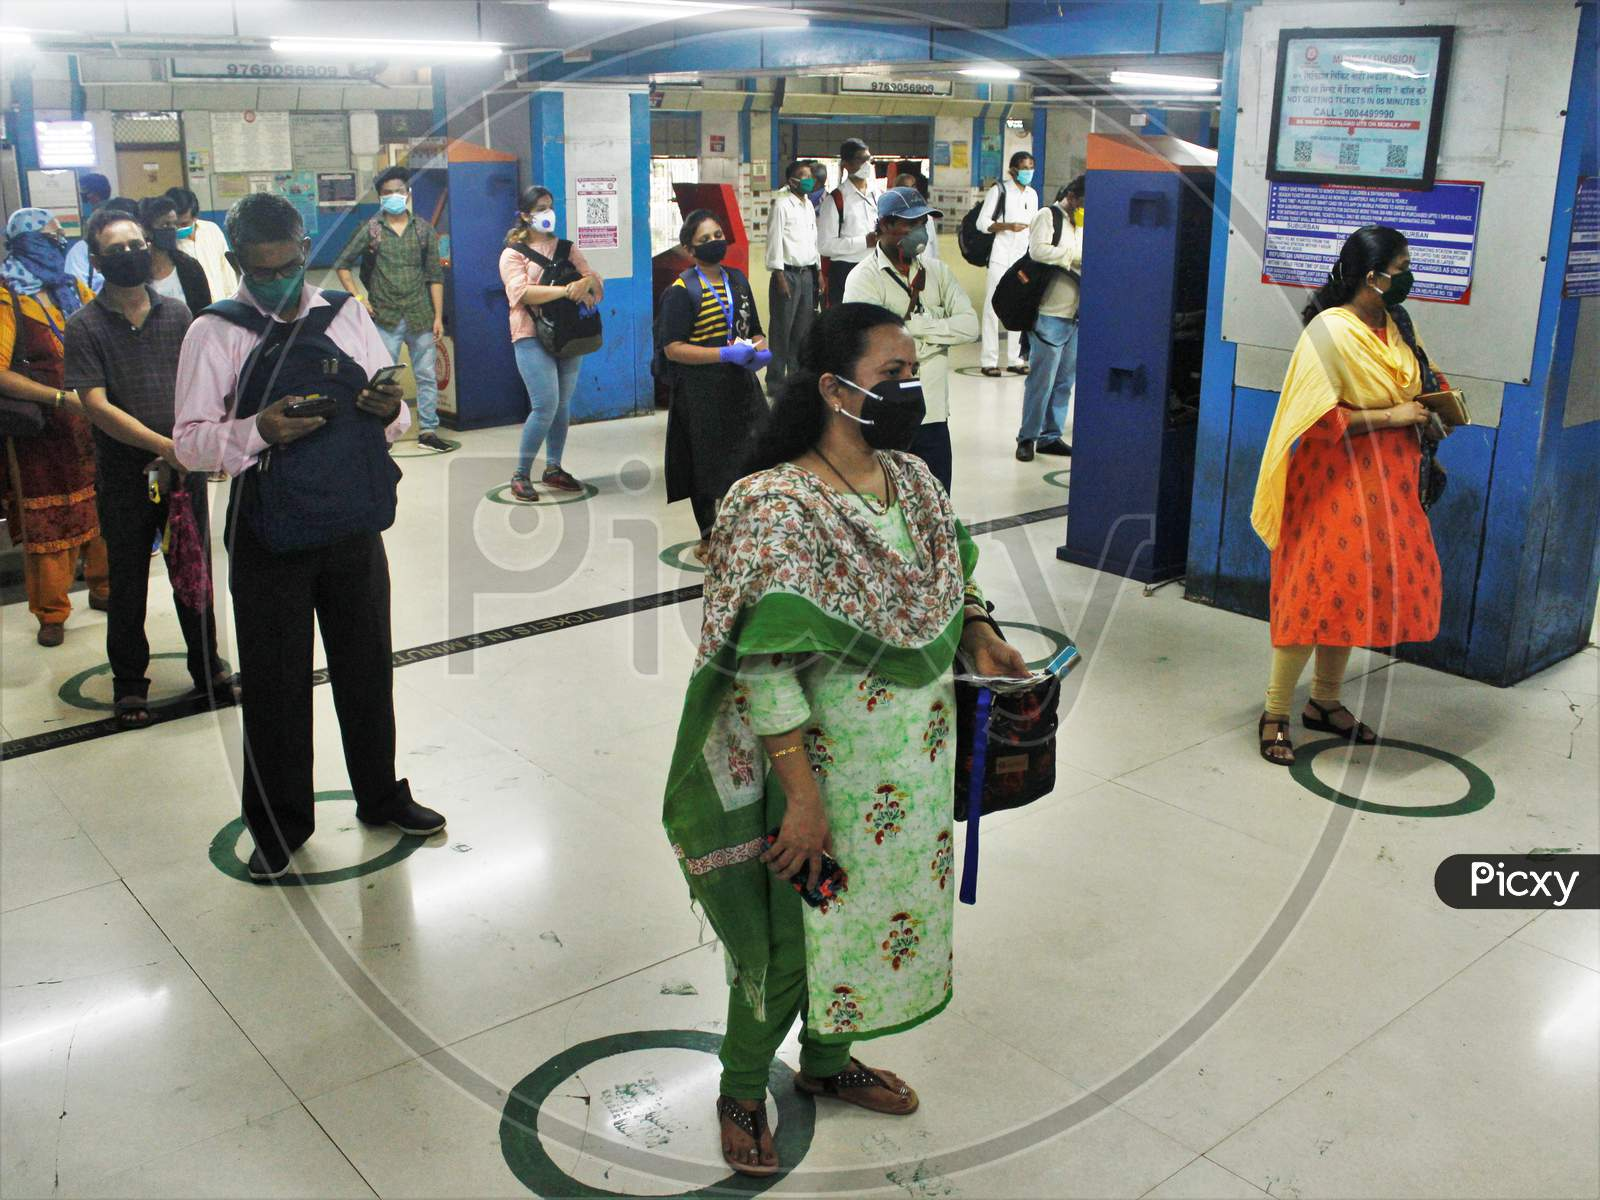 Commuters Stand Inside Circles To Maintain Social Distancing As They Wait To Buy Local Train Tickets, After The Government Eased A Nationwide Lockdown That Was Imposed As A Preventative Measure Against The Covid-19  Coronavirus , At Churchgate Station, In Mumbai, India On June 16, 2020.